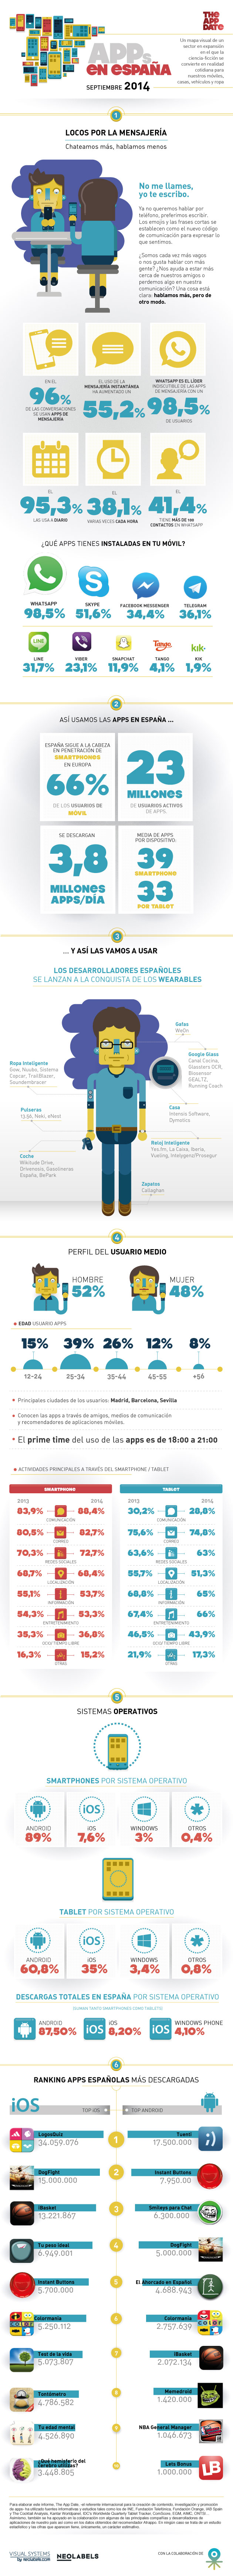 infografía-apps-the-app-date